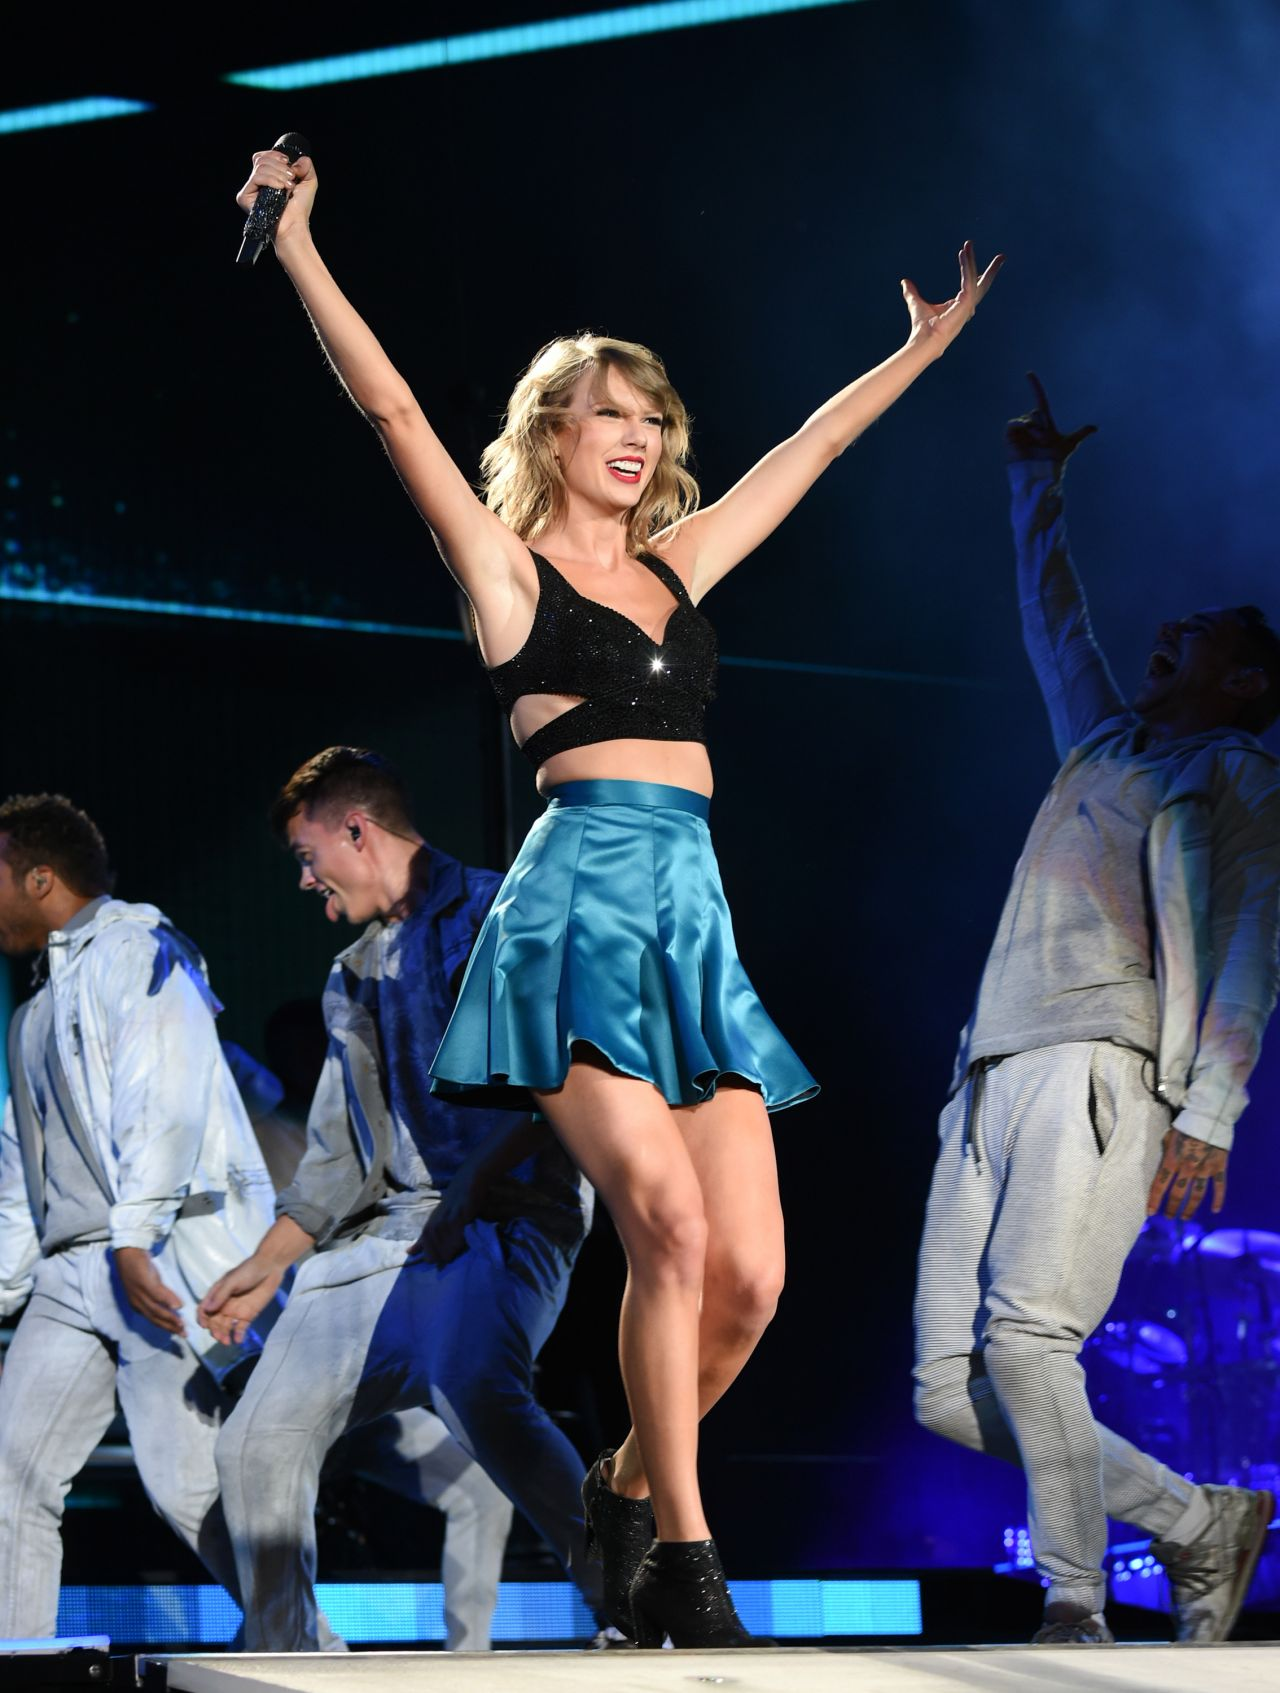 taylor swift concert review 1989